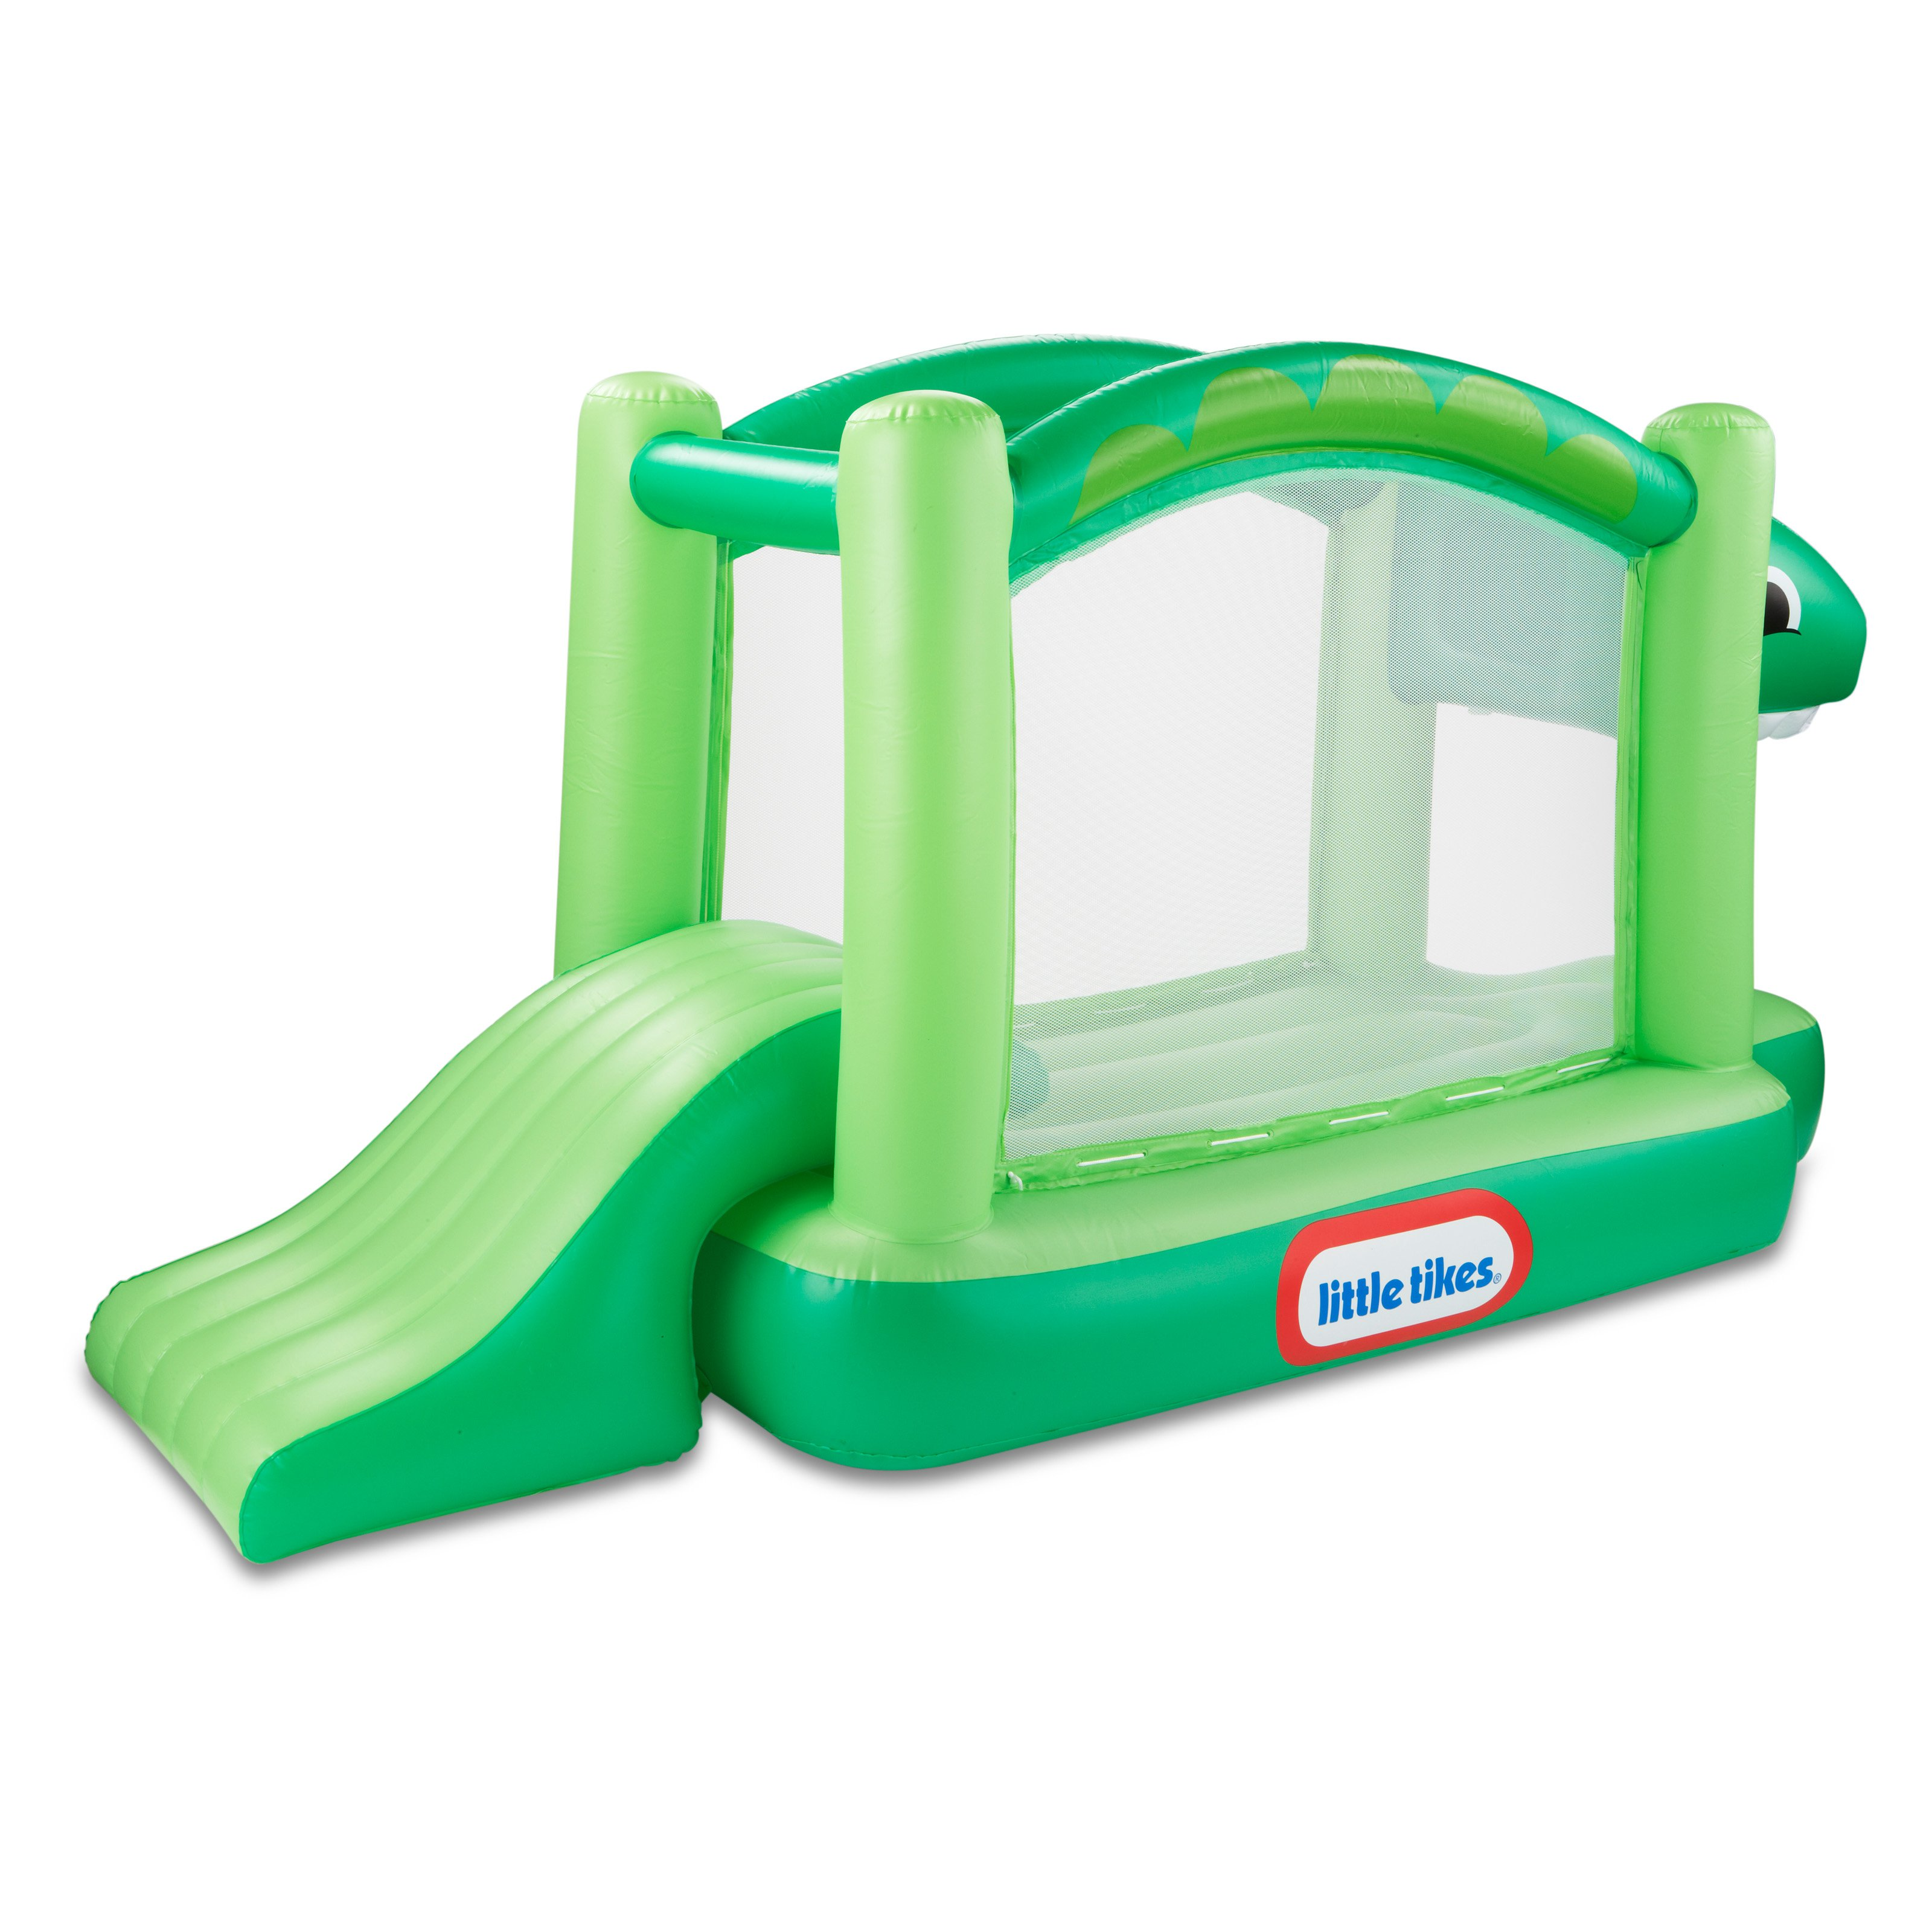 Little Tikes Dino Bouncer- refresh by Little Tikes